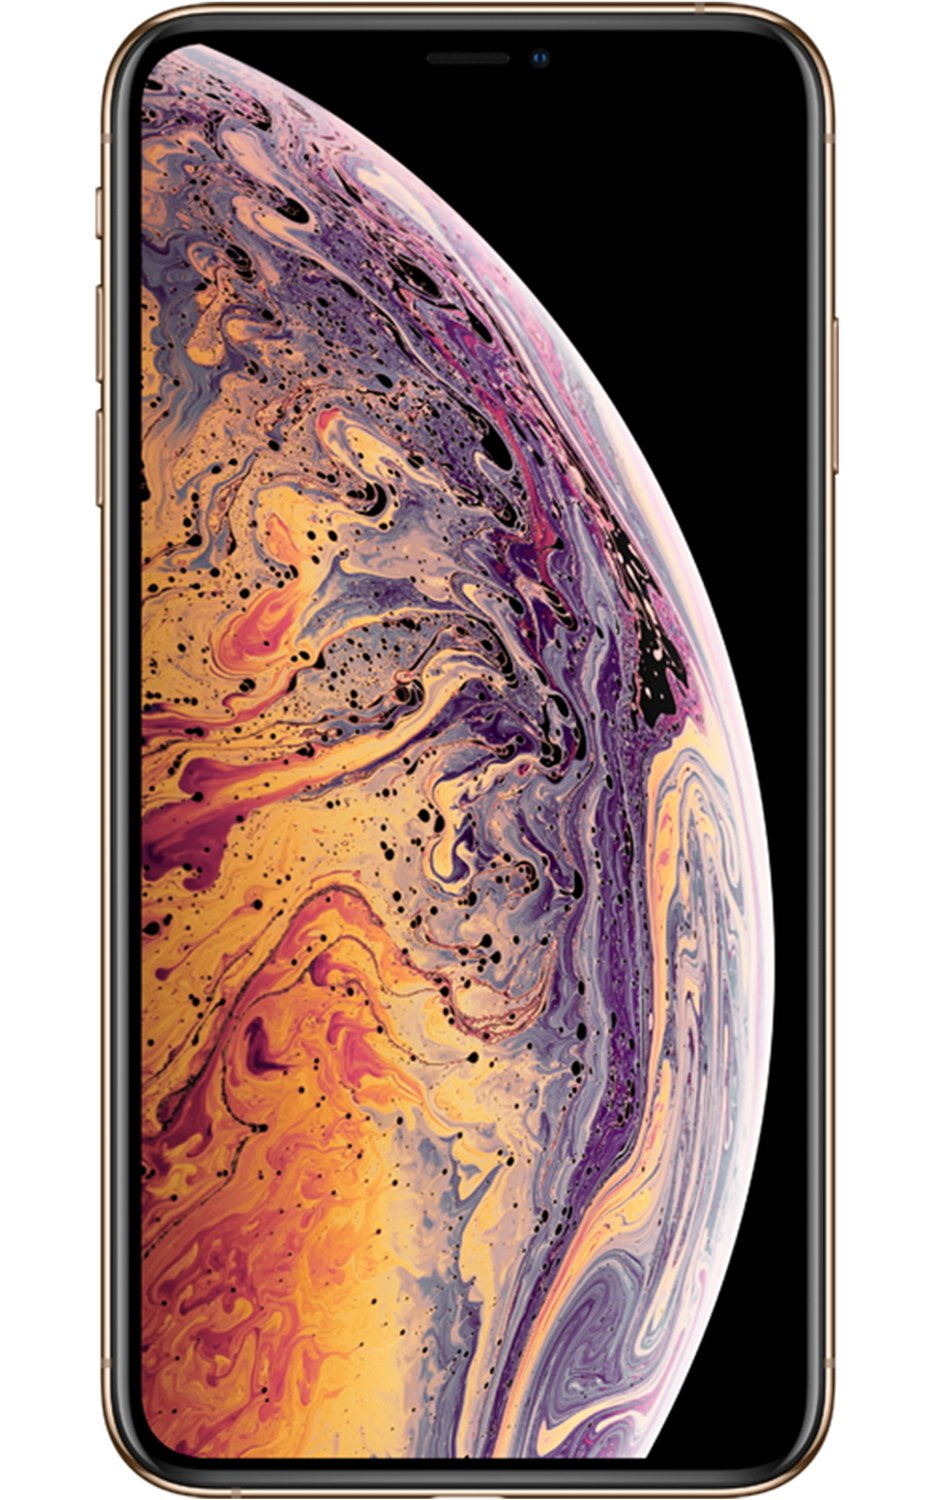 iPhone XS Max With FaceTime  512GB 4G LTE - International Specs